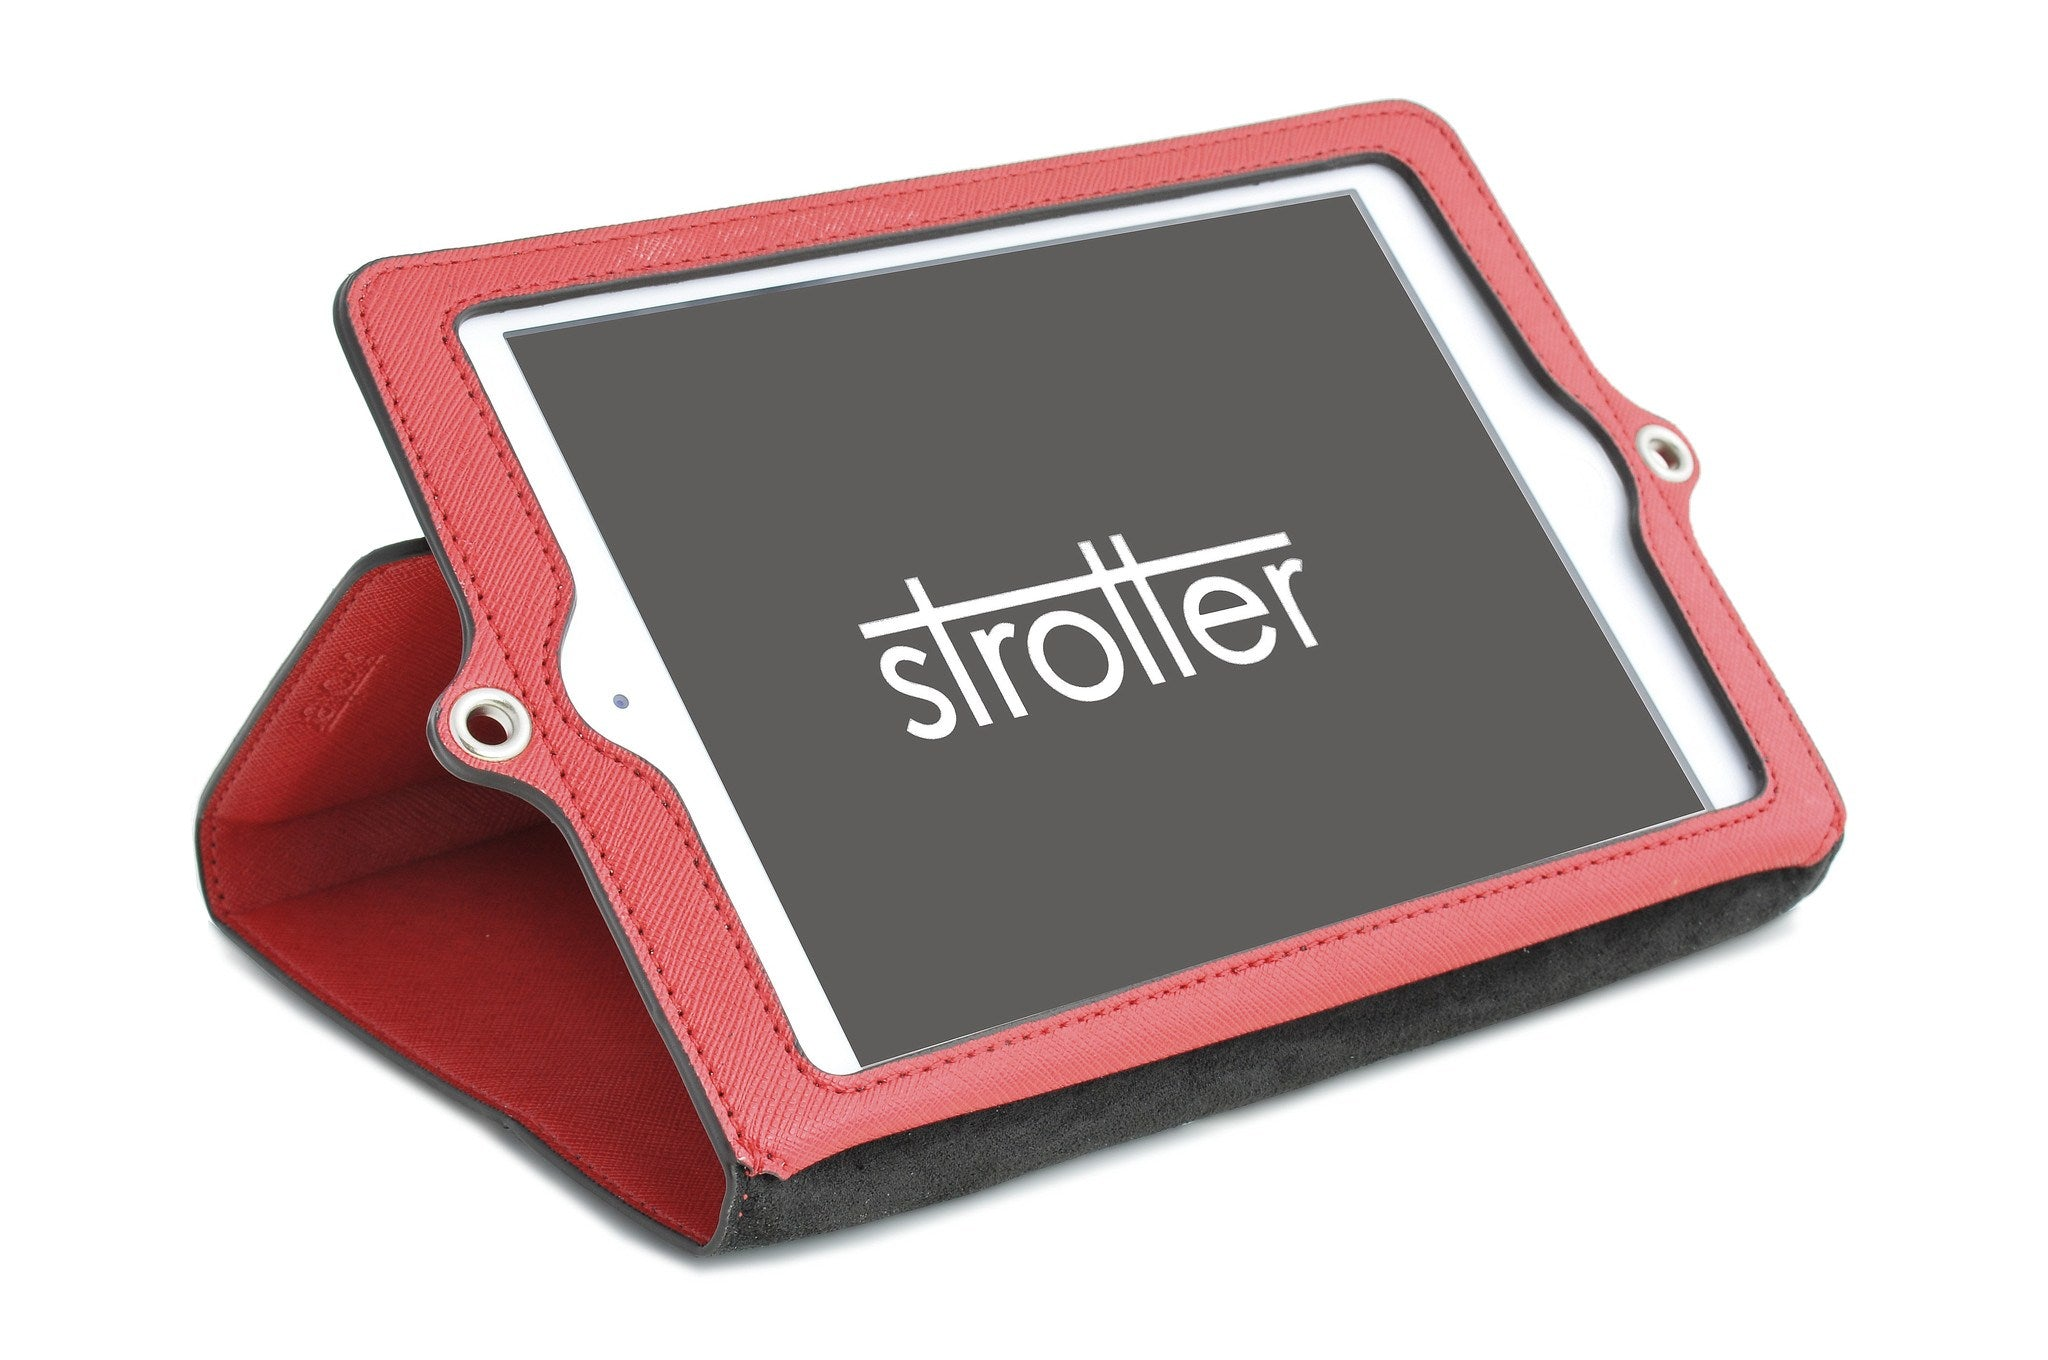 ACROSS  case for iPad Mini from Strotter.